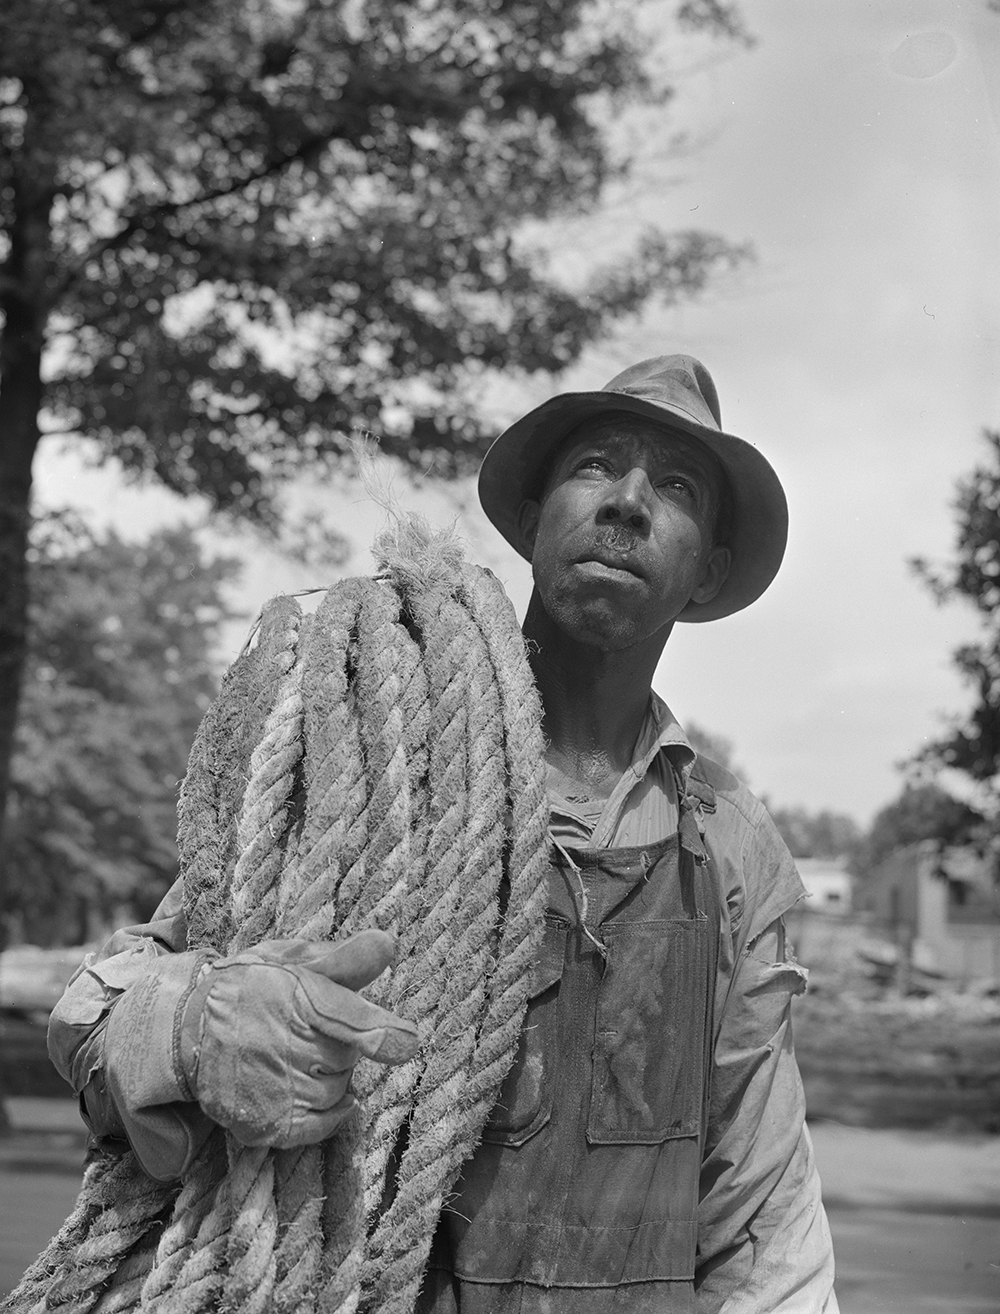 Construction worker in Washington, DC, 1942. Photograph by Gordon Parks. Library of Congress, Prints and Photographs Division.